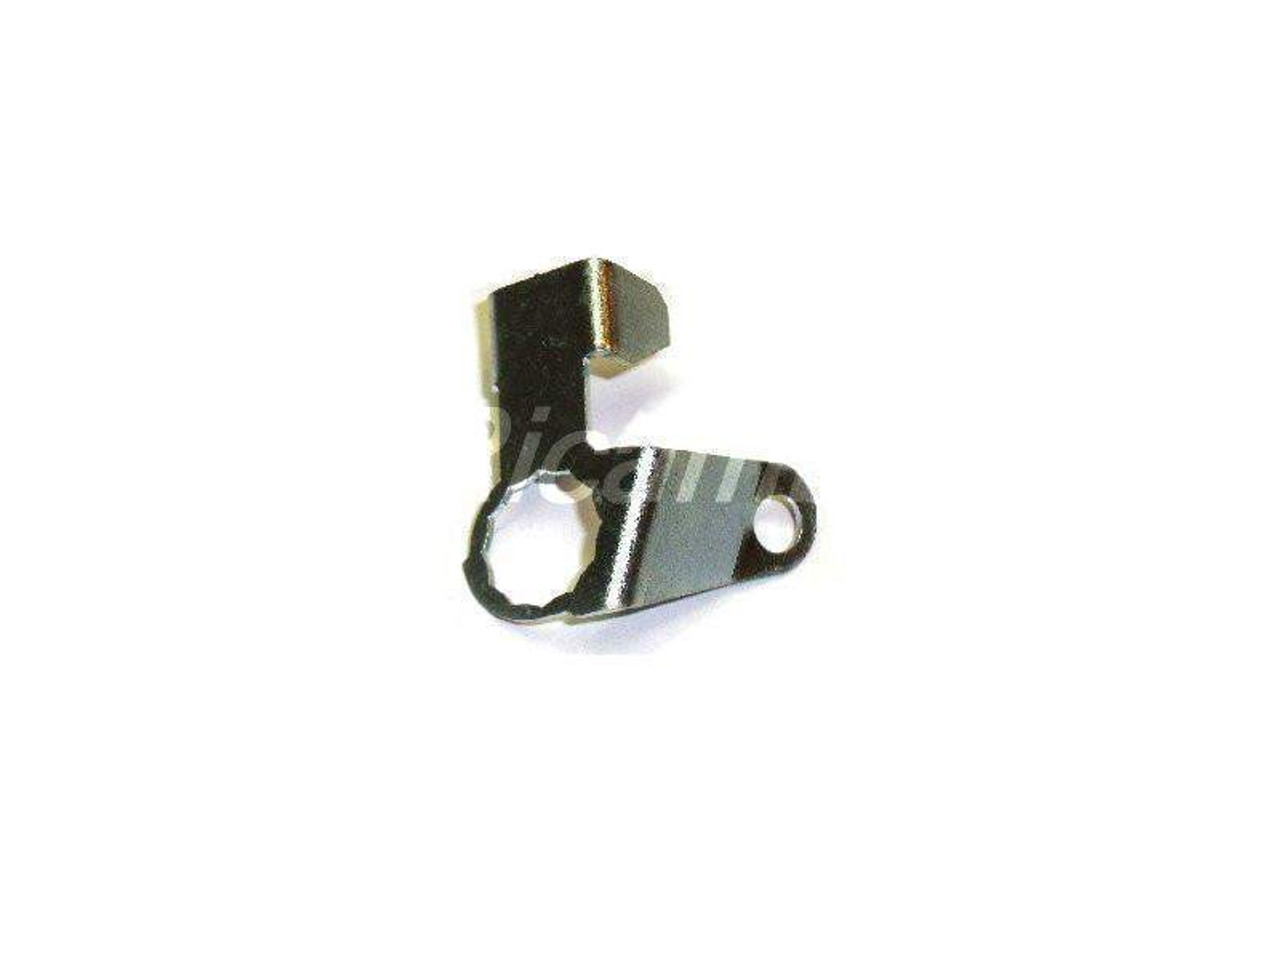 Right Brake Hose Lock Plate